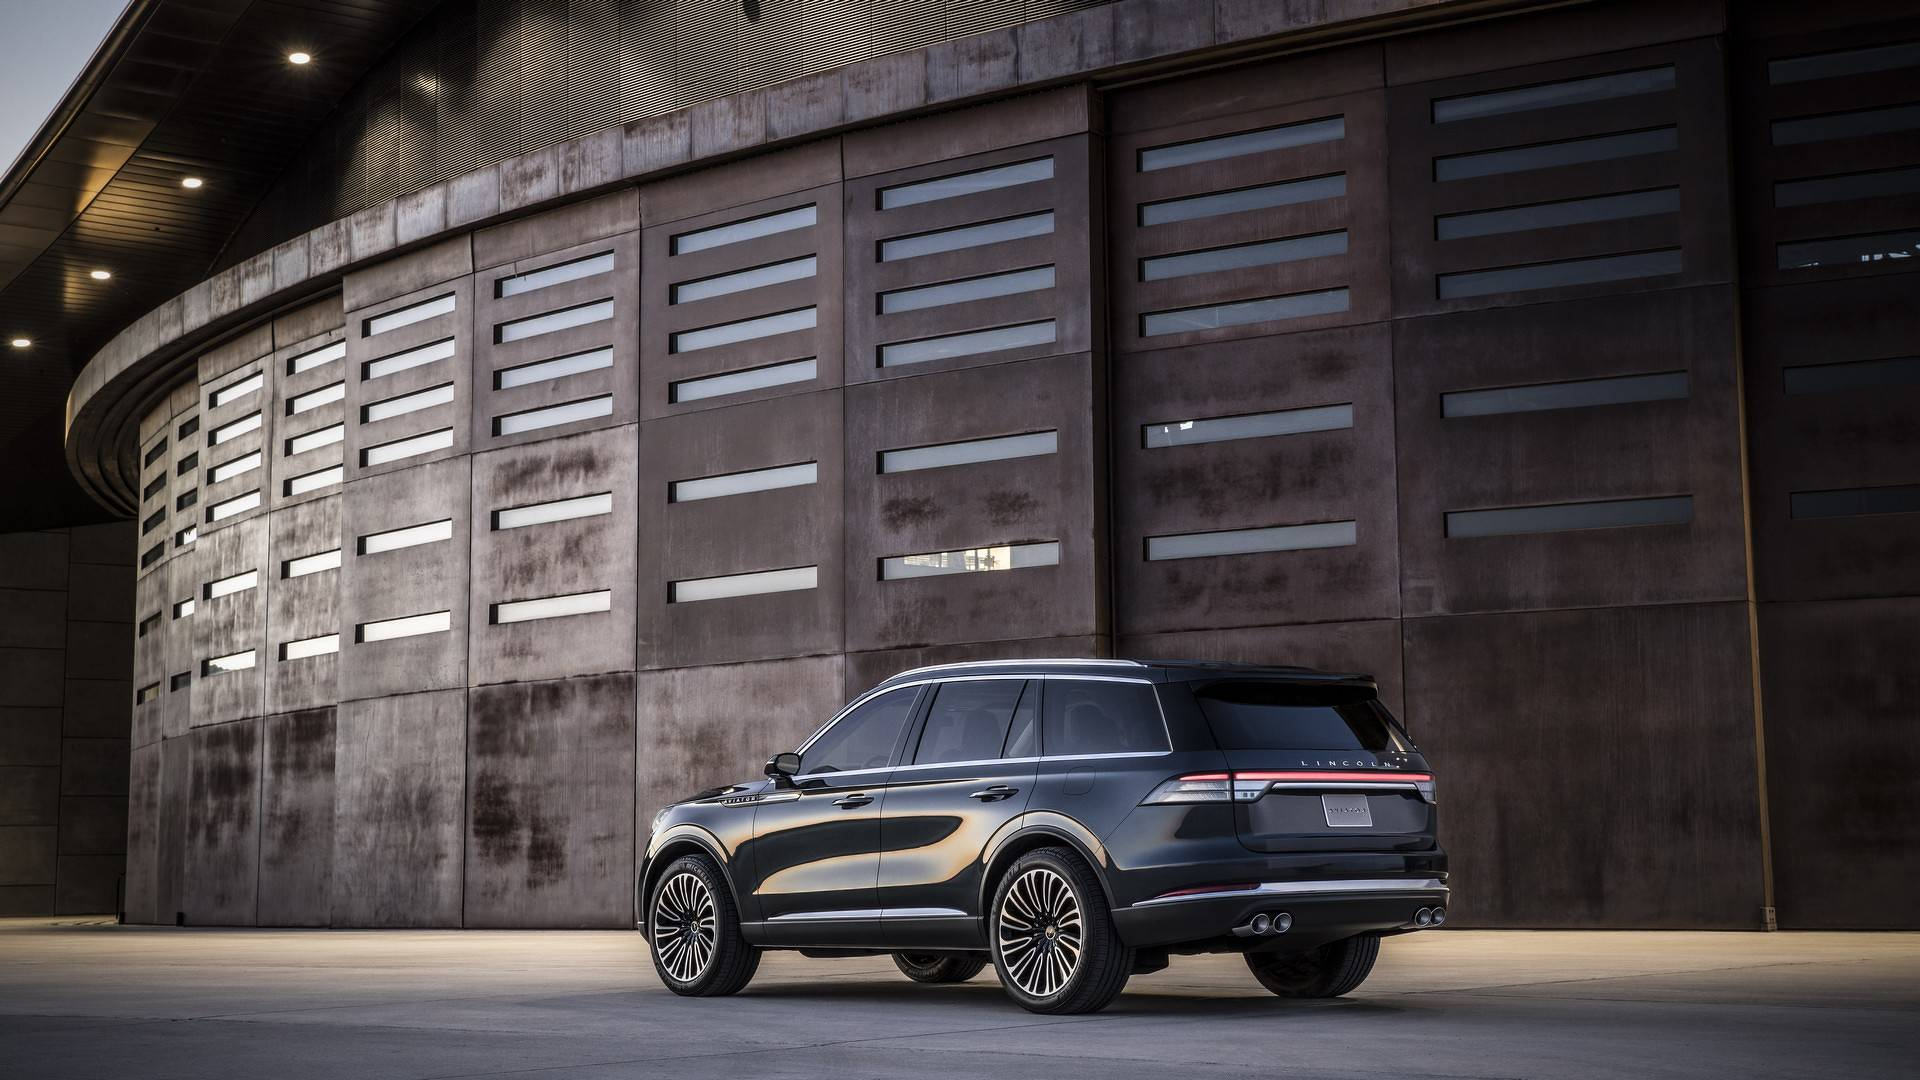 2020 Ford Explorer Teased in Beijing, Will be Made in China and Chicago - autoevolution